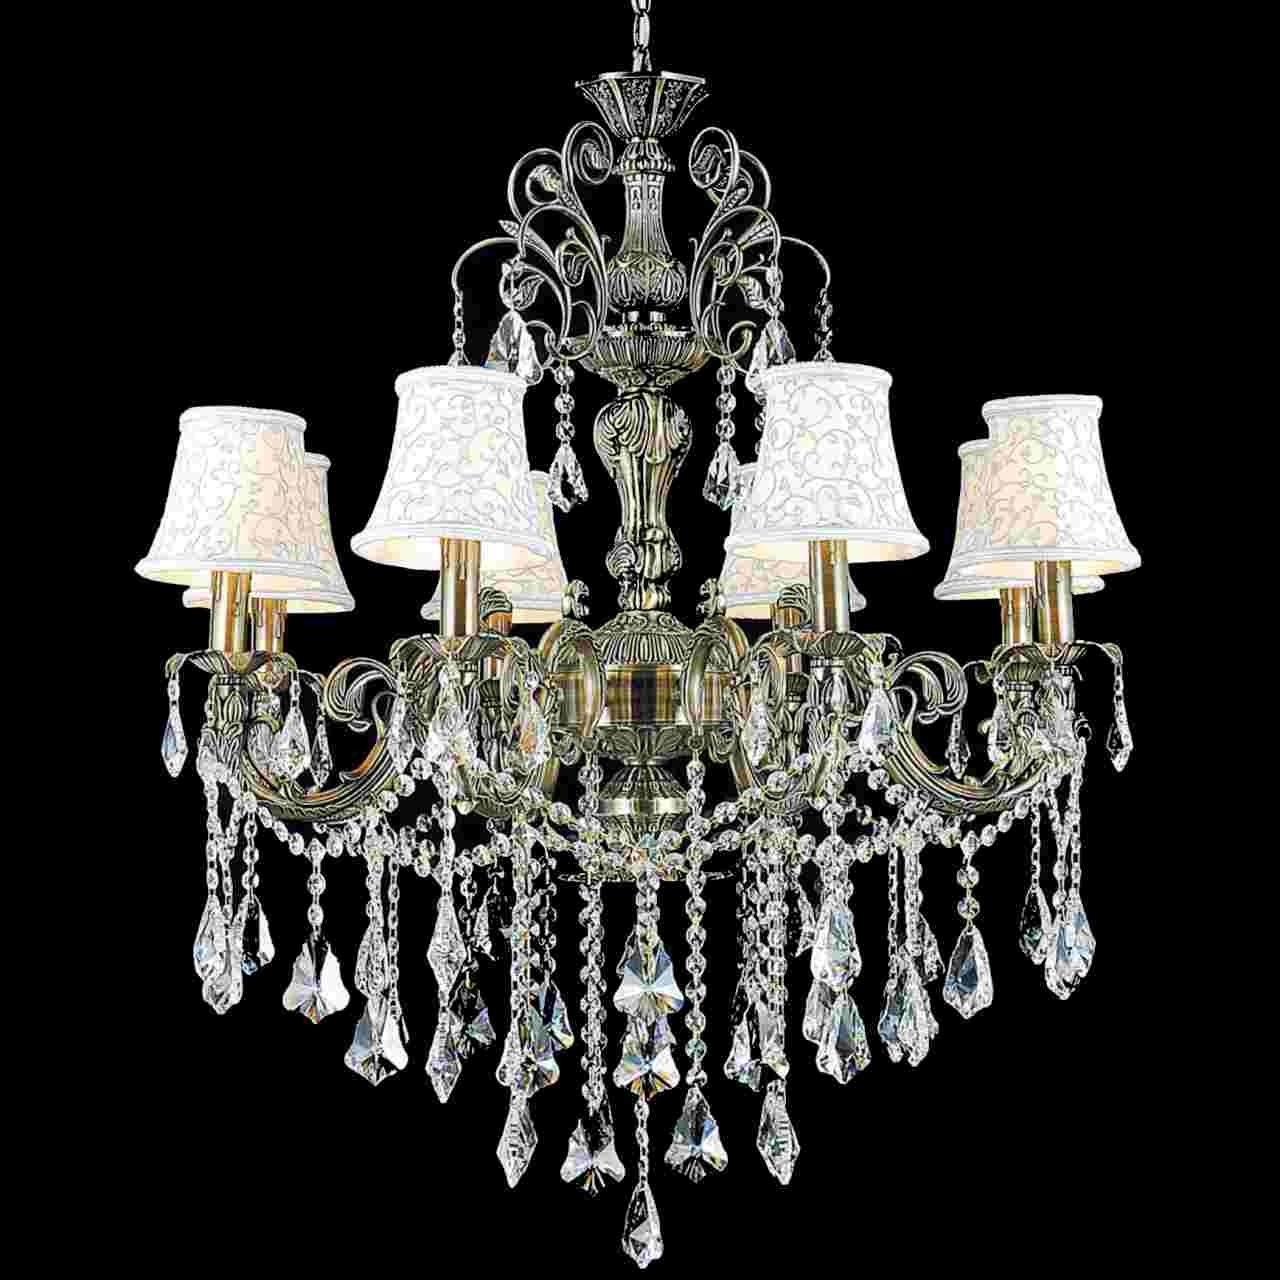 Famous Chandelier With Shades And Crystals Regarding Brizzo Lighting Stores (View 6 of 20)